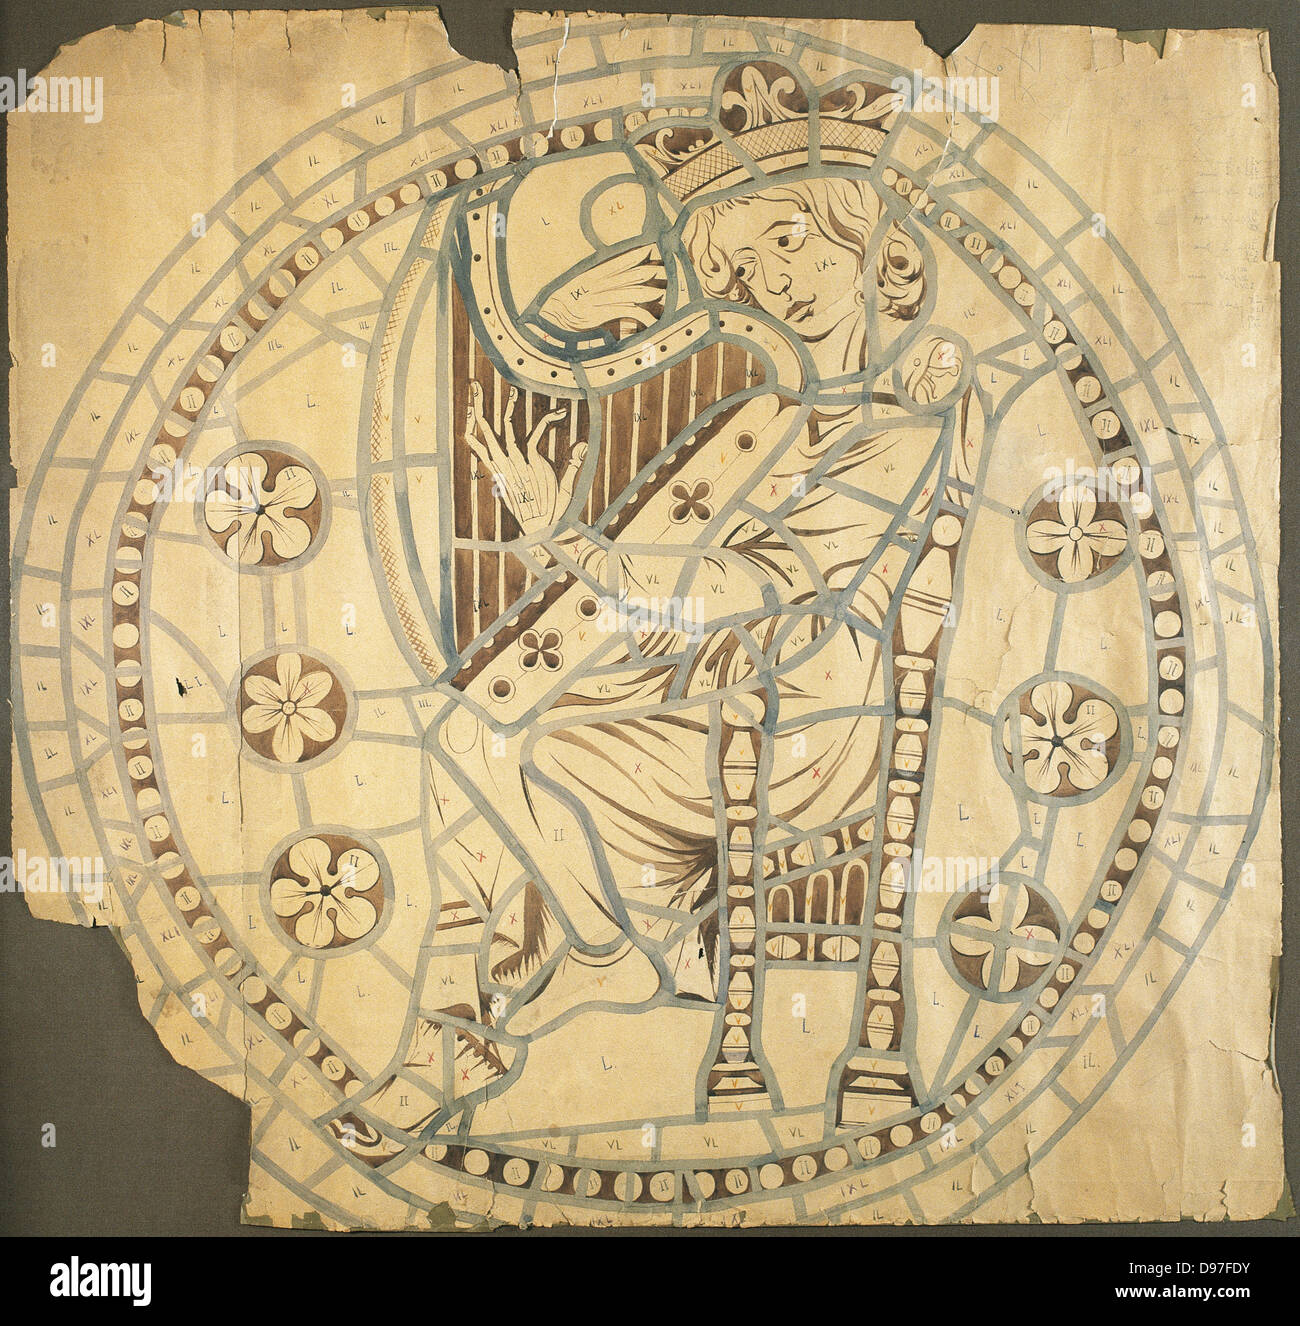 King David. Drawing for the rose window of the Cathedral of Leon. 14th century. Paper, gouache. - Stock Image